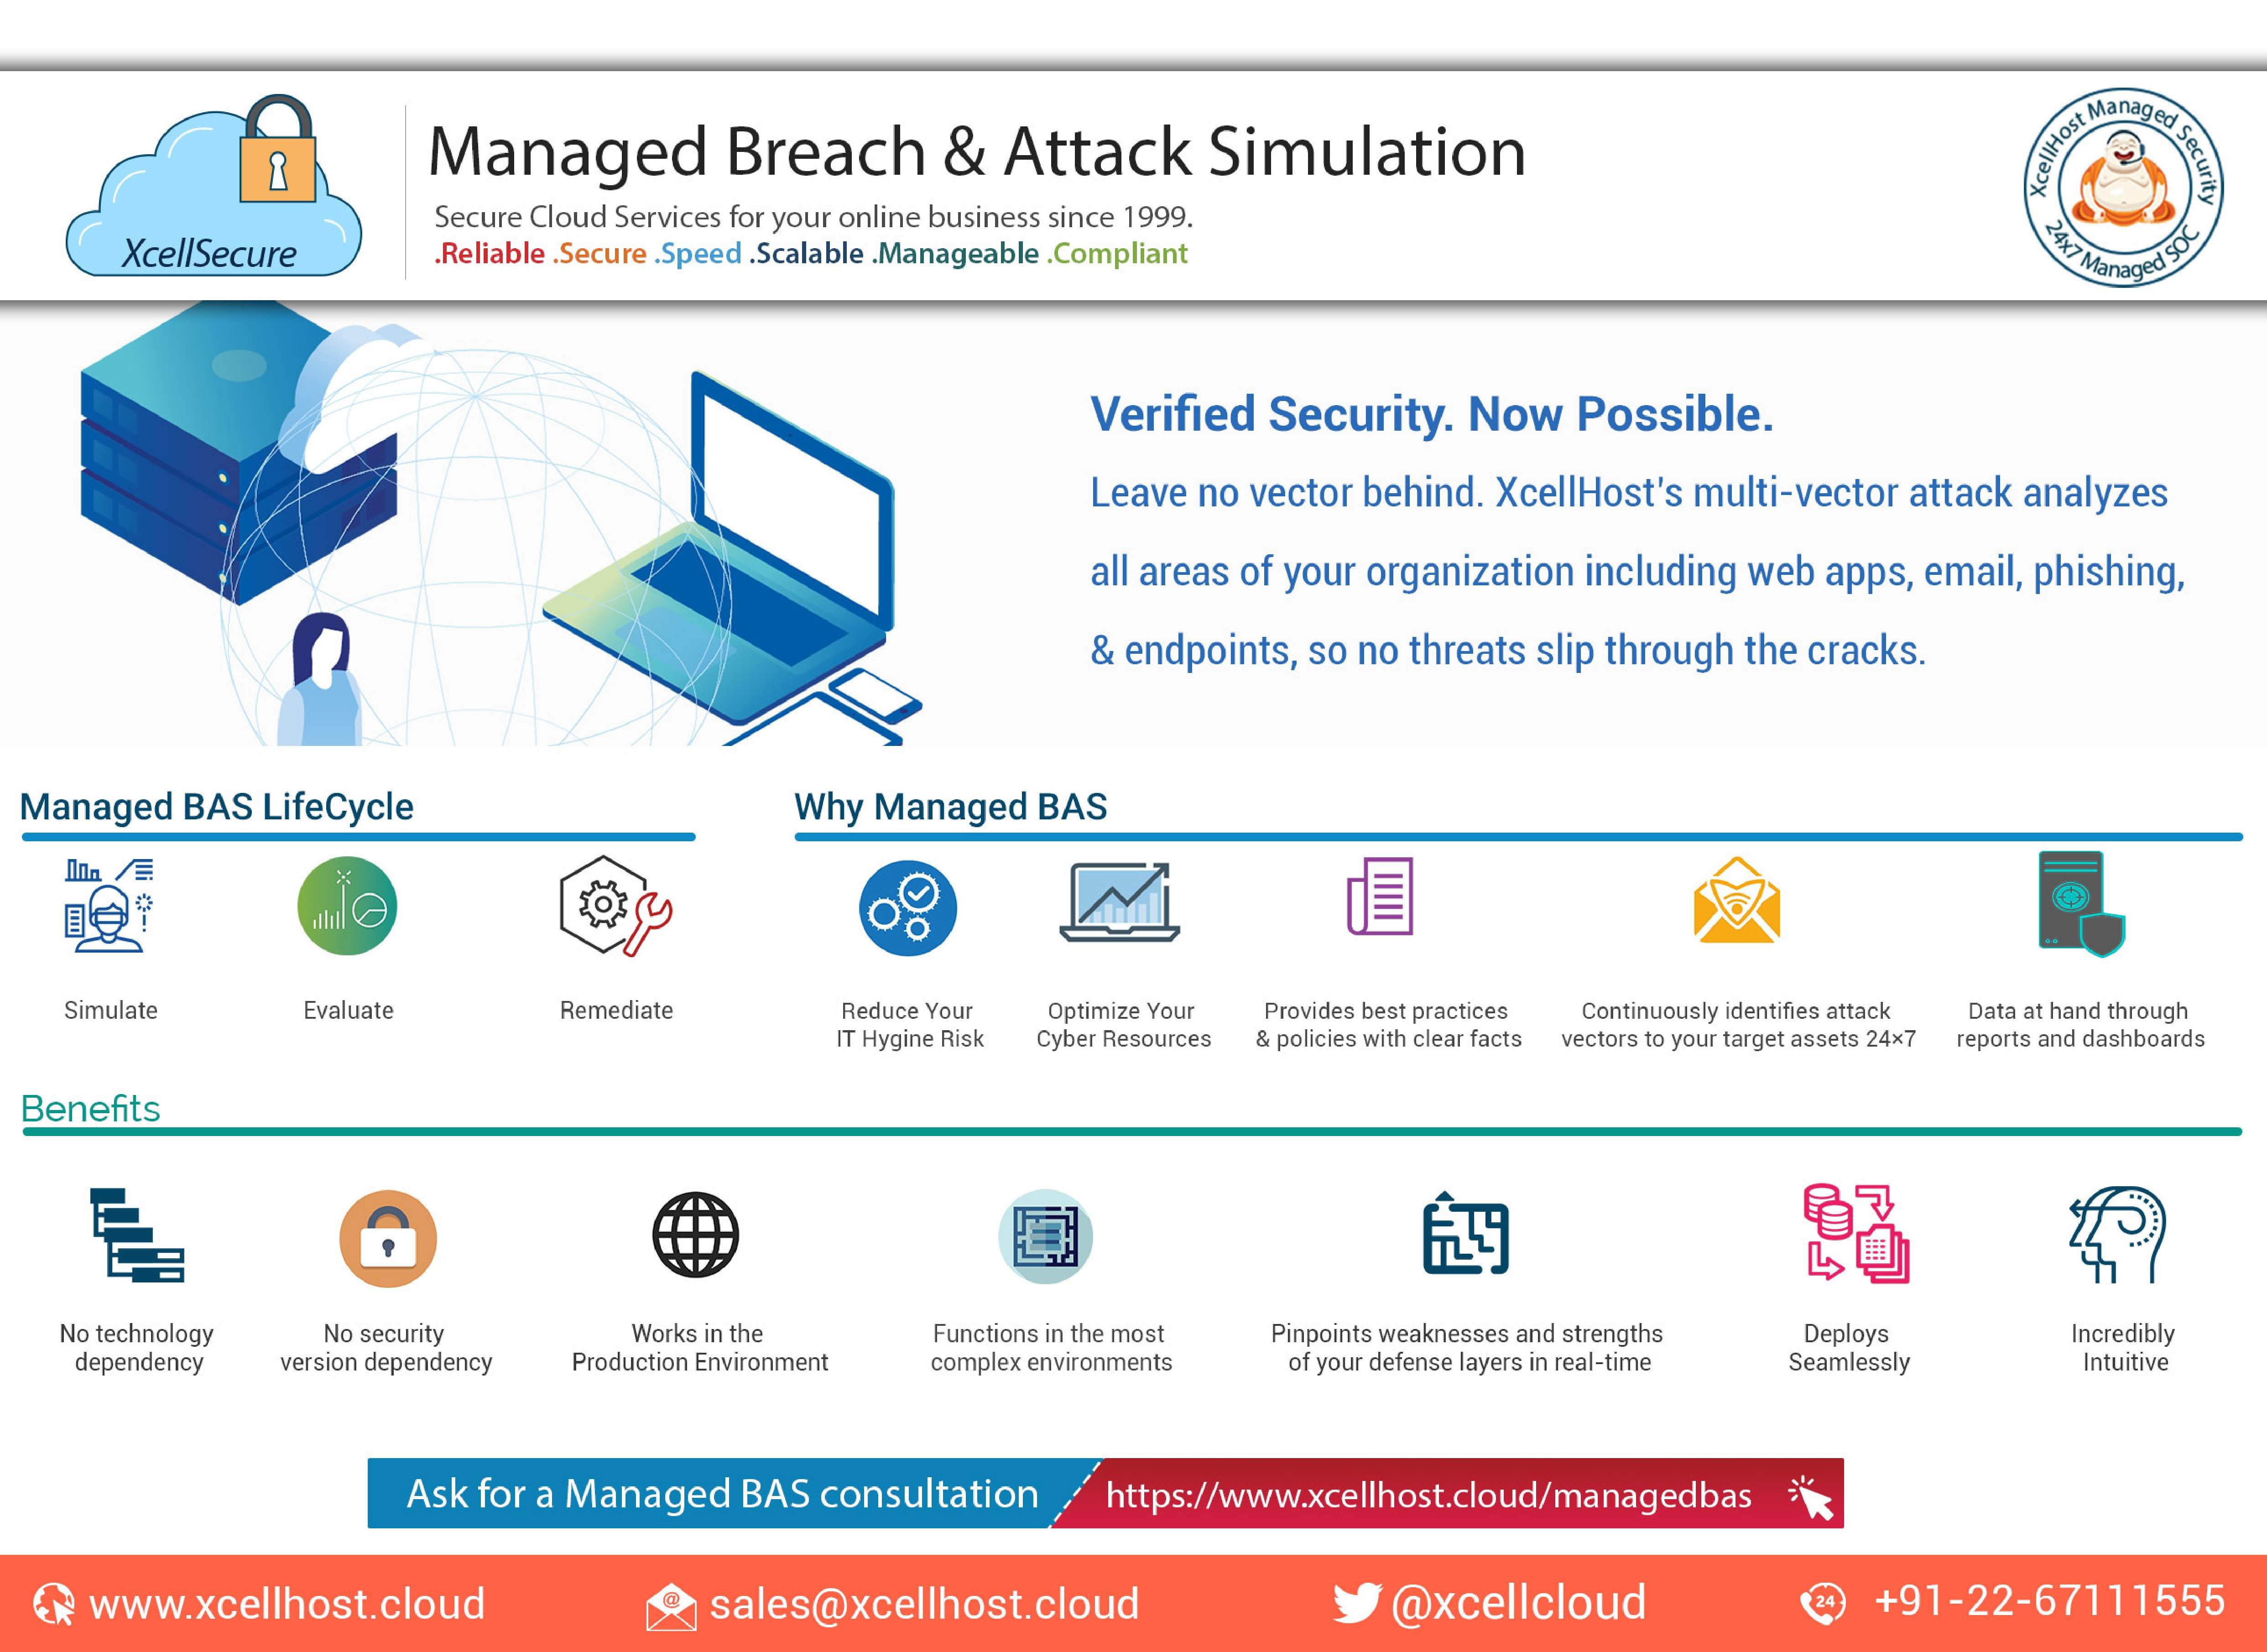 Managed Breach & Attack Simulation DS 1